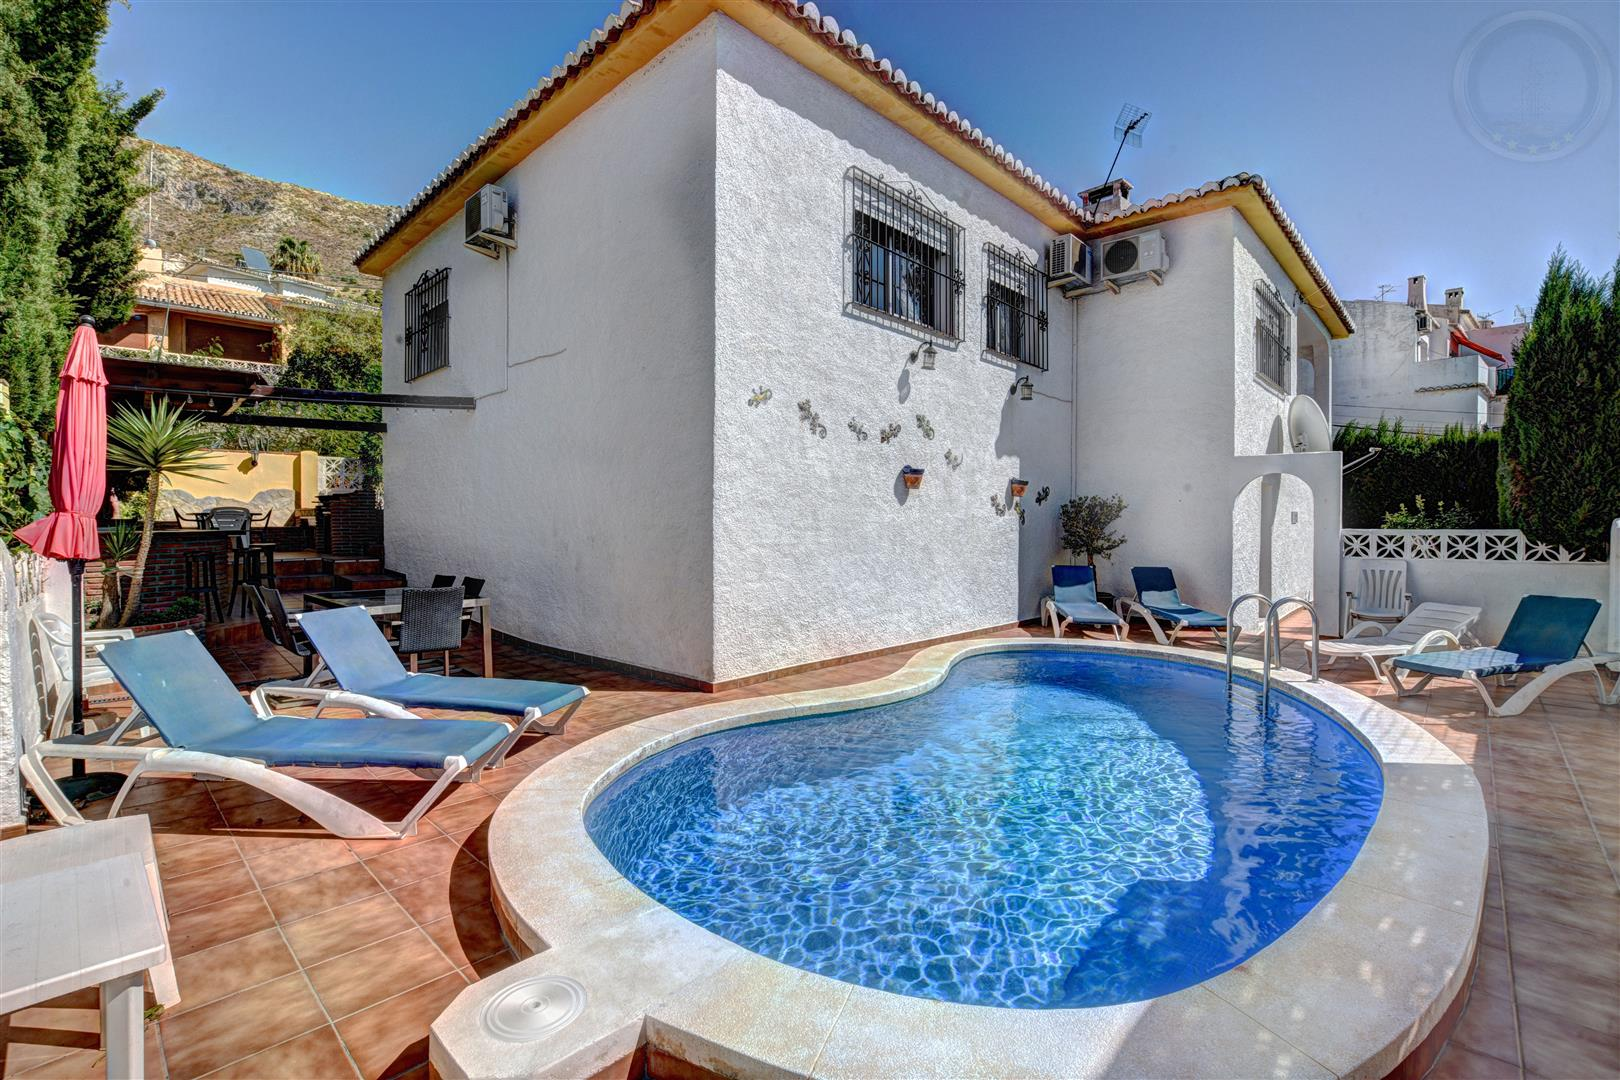 Villa for sale in Arroyo de la Miel 3